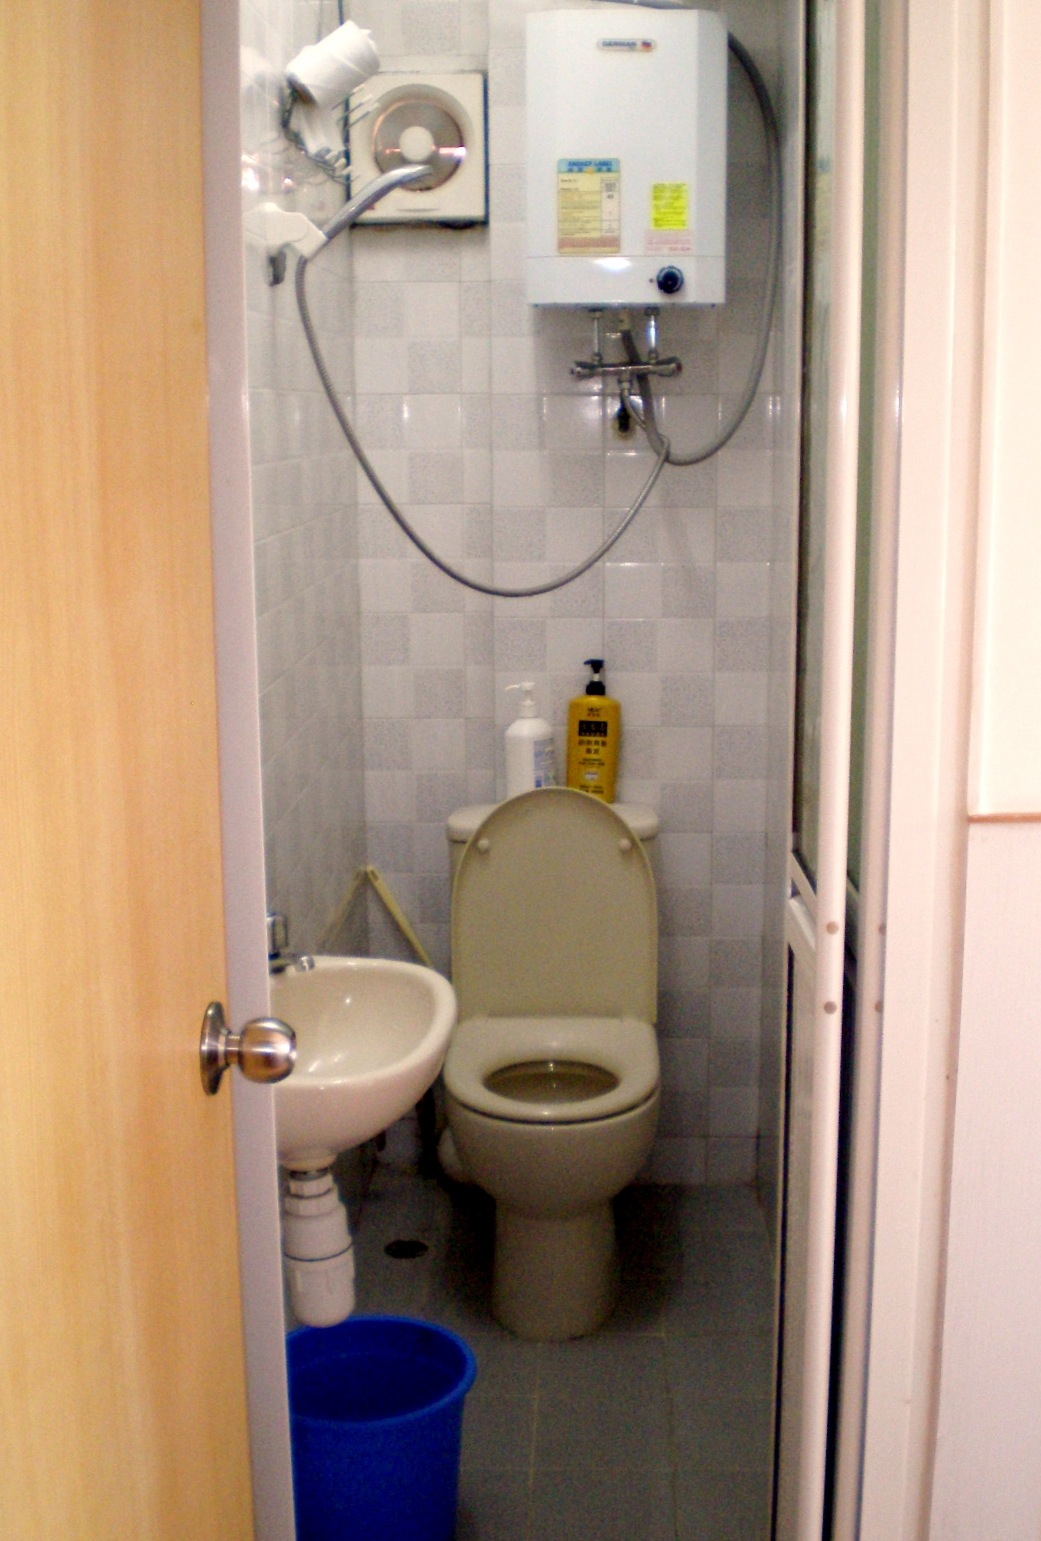 File:Hong Kong combination shower and bathroom.jpg - Wikimedia Commons